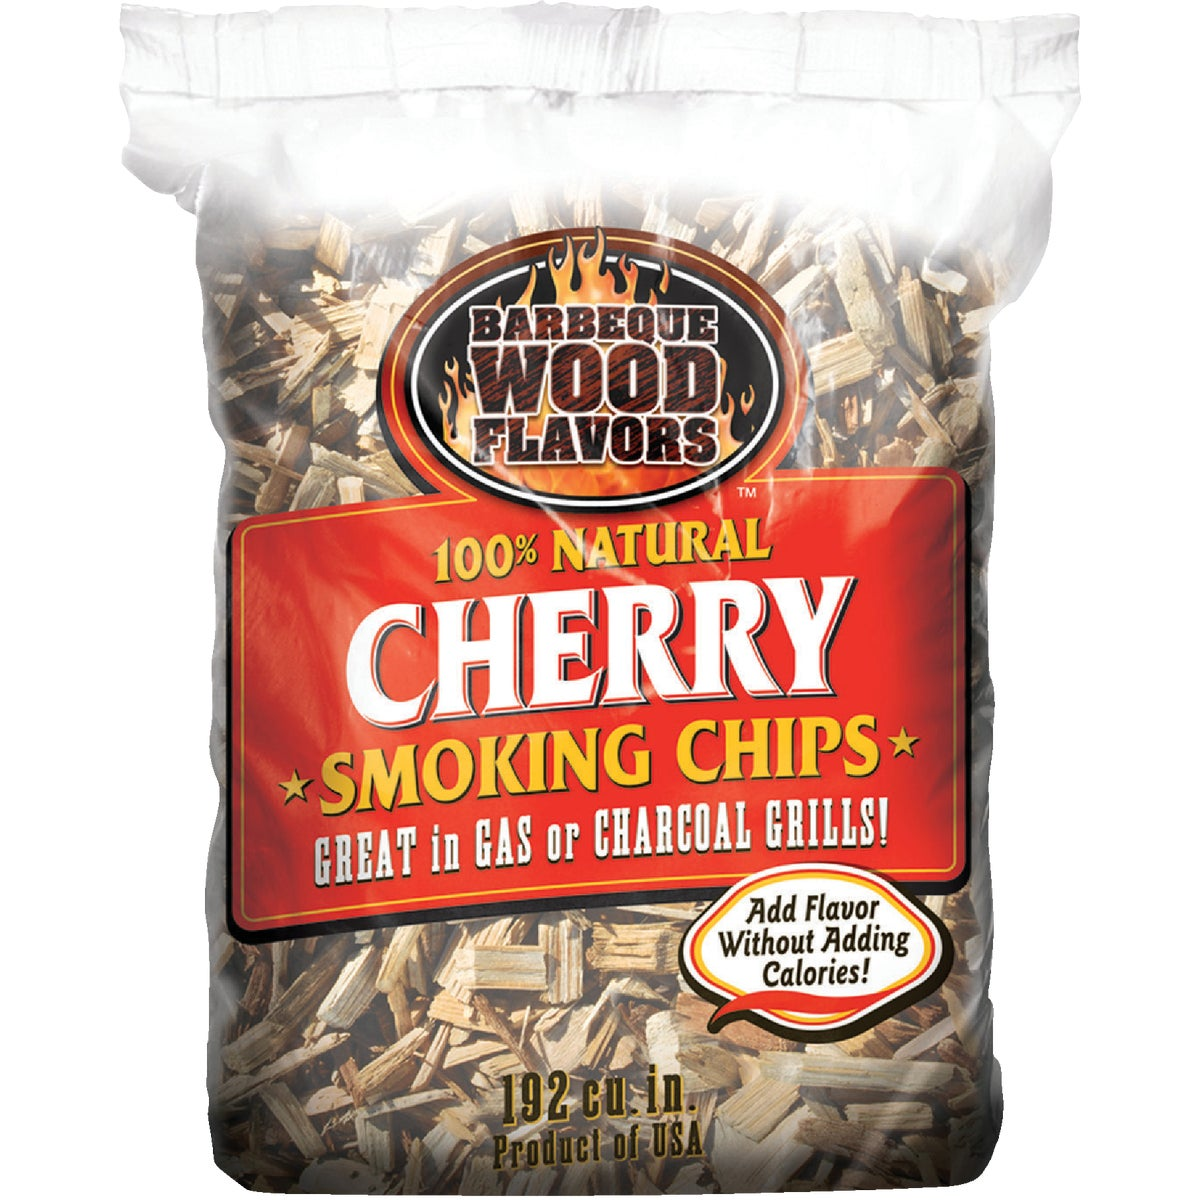 2.25LB CHERRY WOOD CHIPS - 90303 by Barbeque Wood Flavor